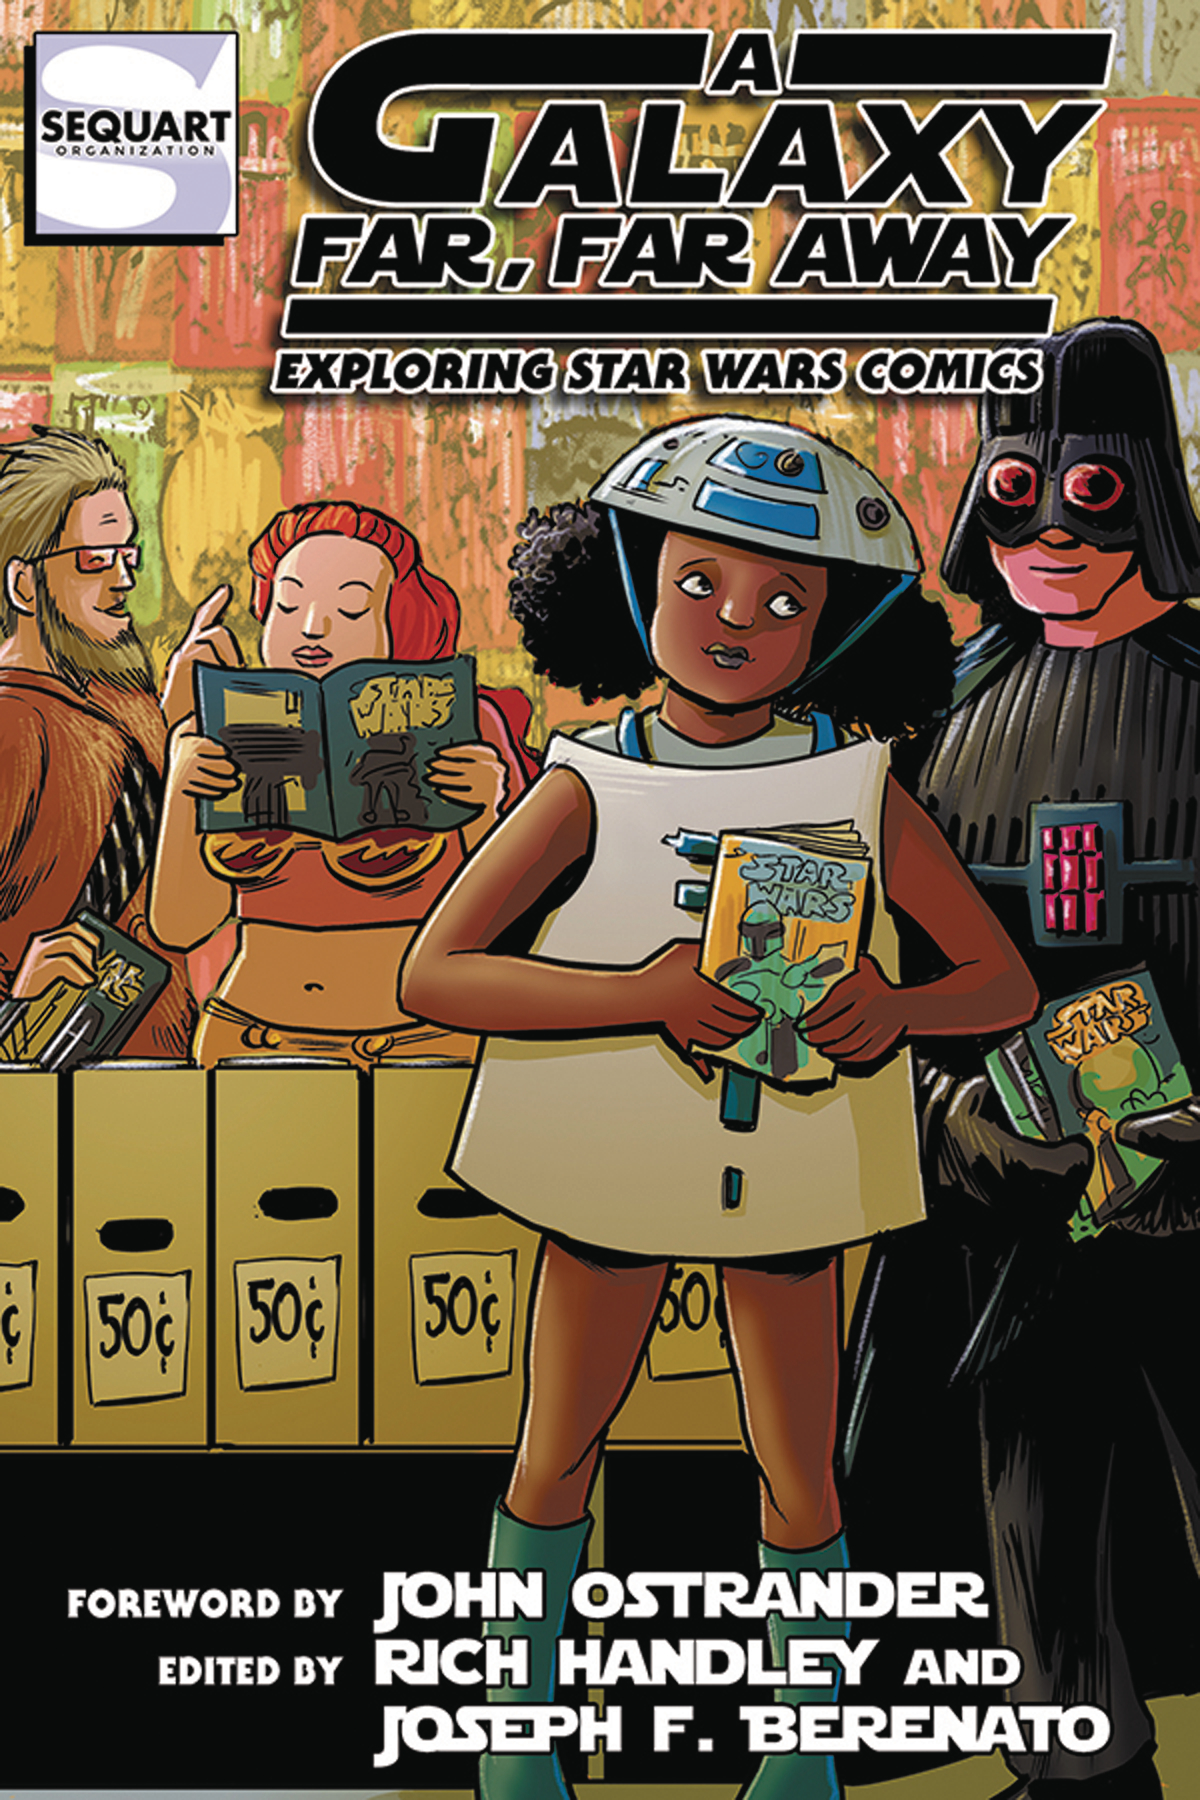 GALAXY FAR FAR AWAY EXPLORING STAR WARS COMICS SC